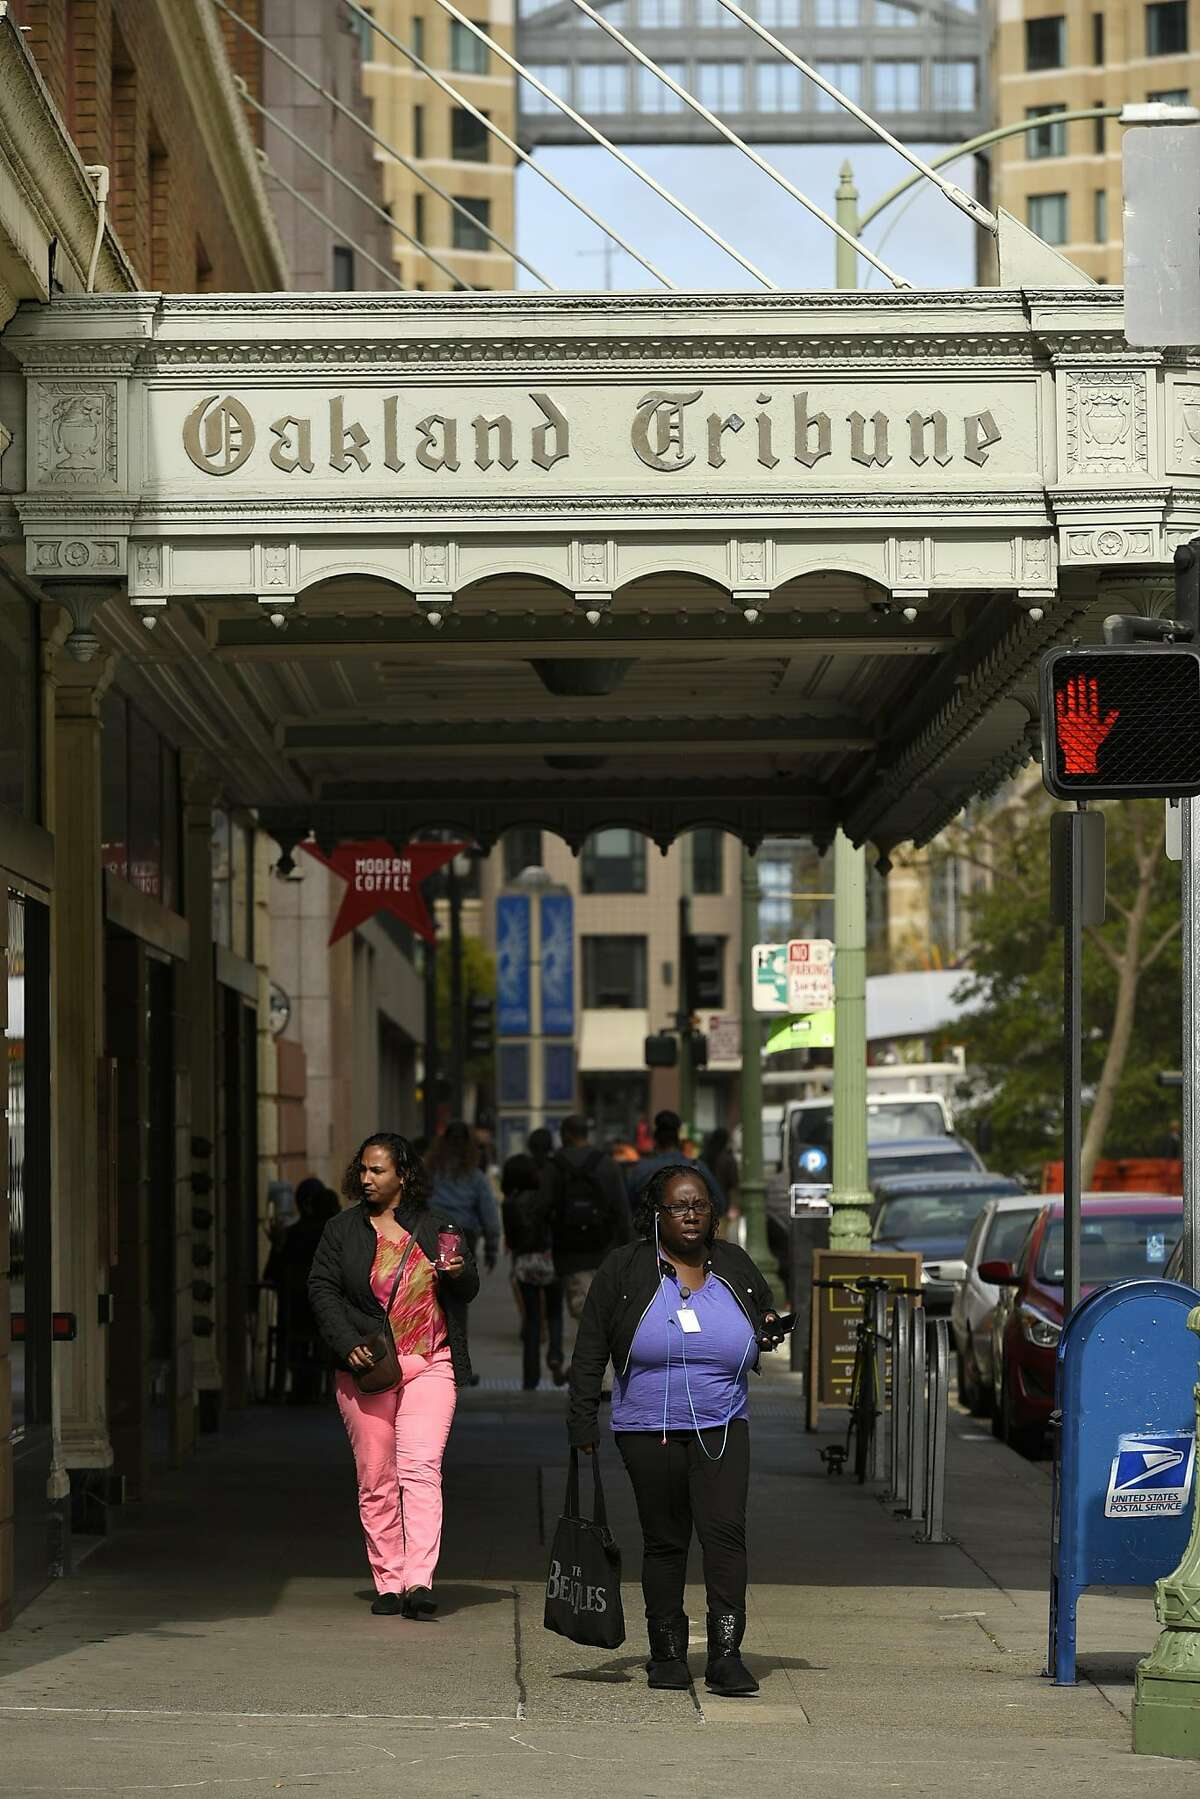 People walk under the marquee of the old Oakland Tribune Tower in Oakland, CA Friday, April 1, 2015.